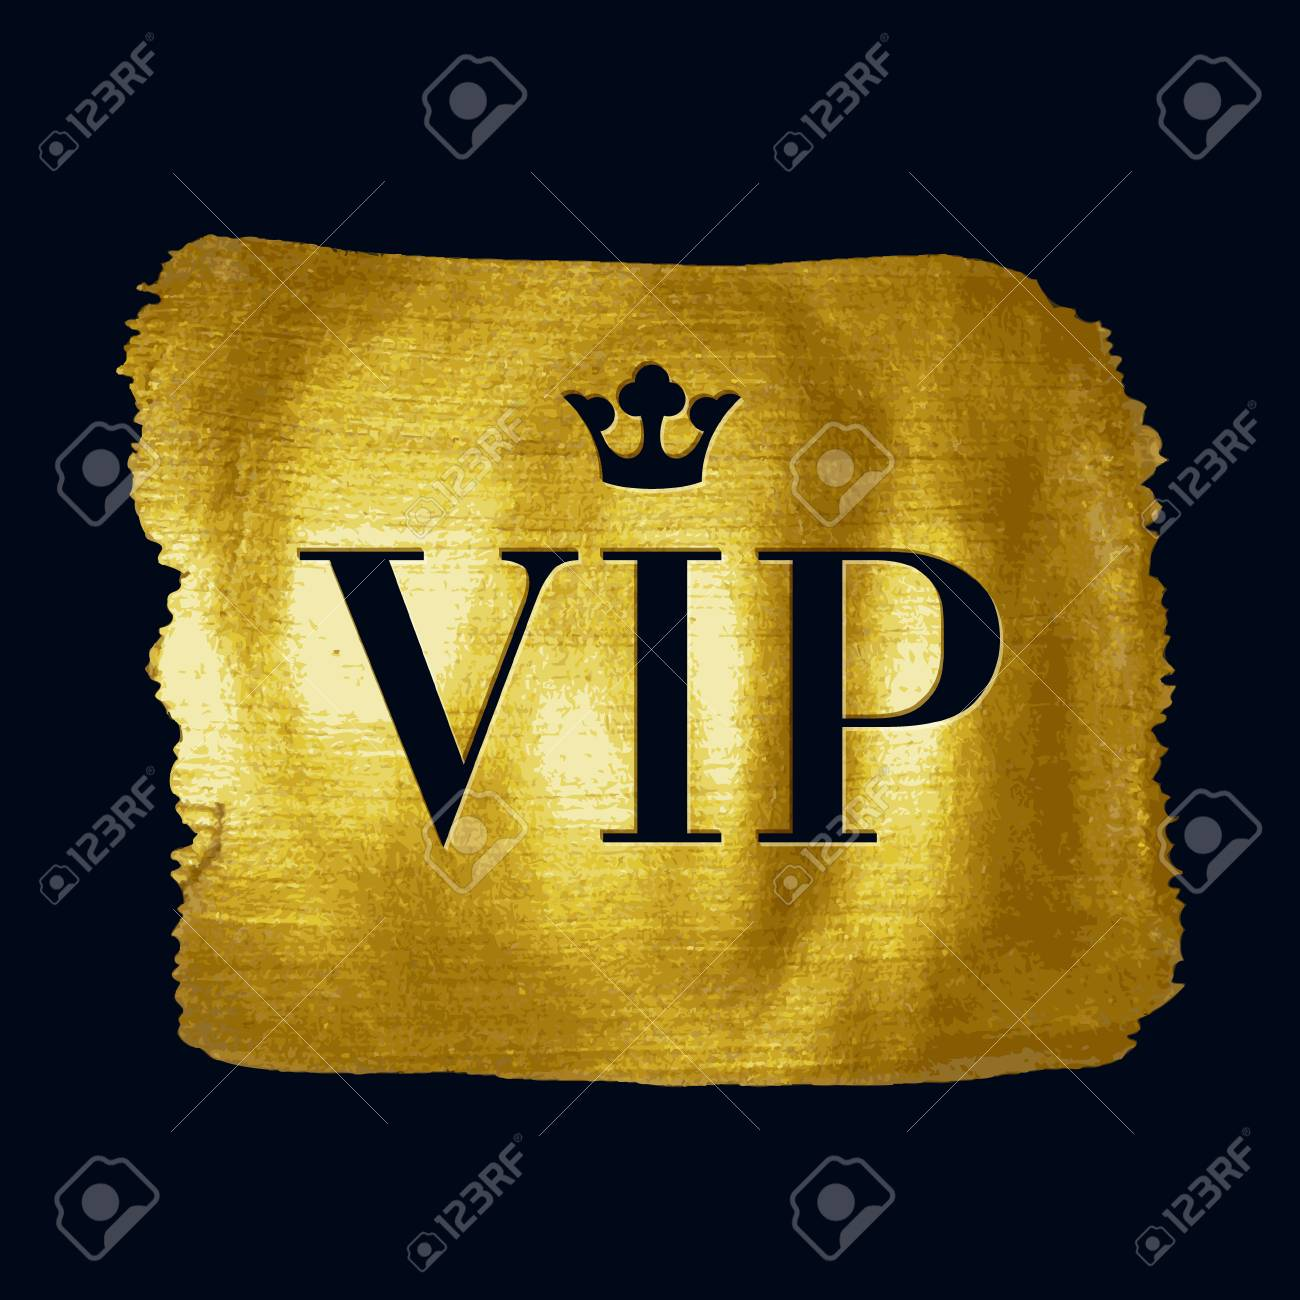 Vip premium letters with royal crown on golden paint brush stroke vector vip premium letters with royal crown on golden paint brush stroke illustration good for party invitation poster card flyer design spiritdancerdesigns Images